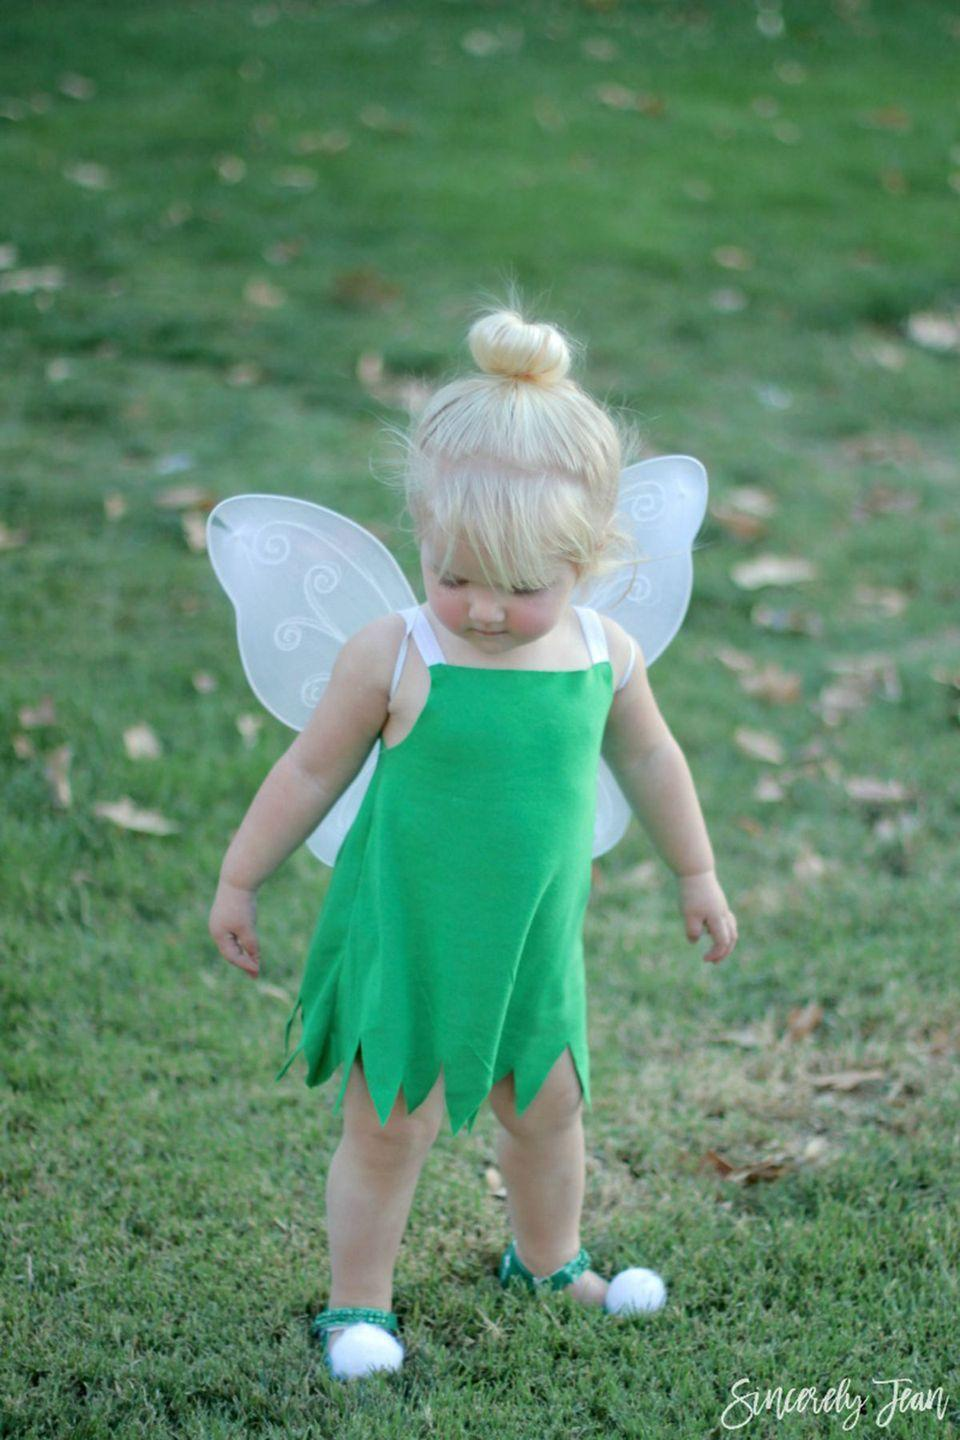 """<p>No need for magic pixie dust—you can make this costume in just a few easy steps.</p><p><strong><strong>Get the tutorial at <a href=""""https://sincerelyjean.com/diy-toddler-tinker-bell-costume-and-hair/"""" rel=""""nofollow noopener"""" target=""""_blank"""" data-ylk=""""slk:Sincerely Jean"""" class=""""link rapid-noclick-resp"""">Sincerely Jean</a>.</strong></strong></p>"""